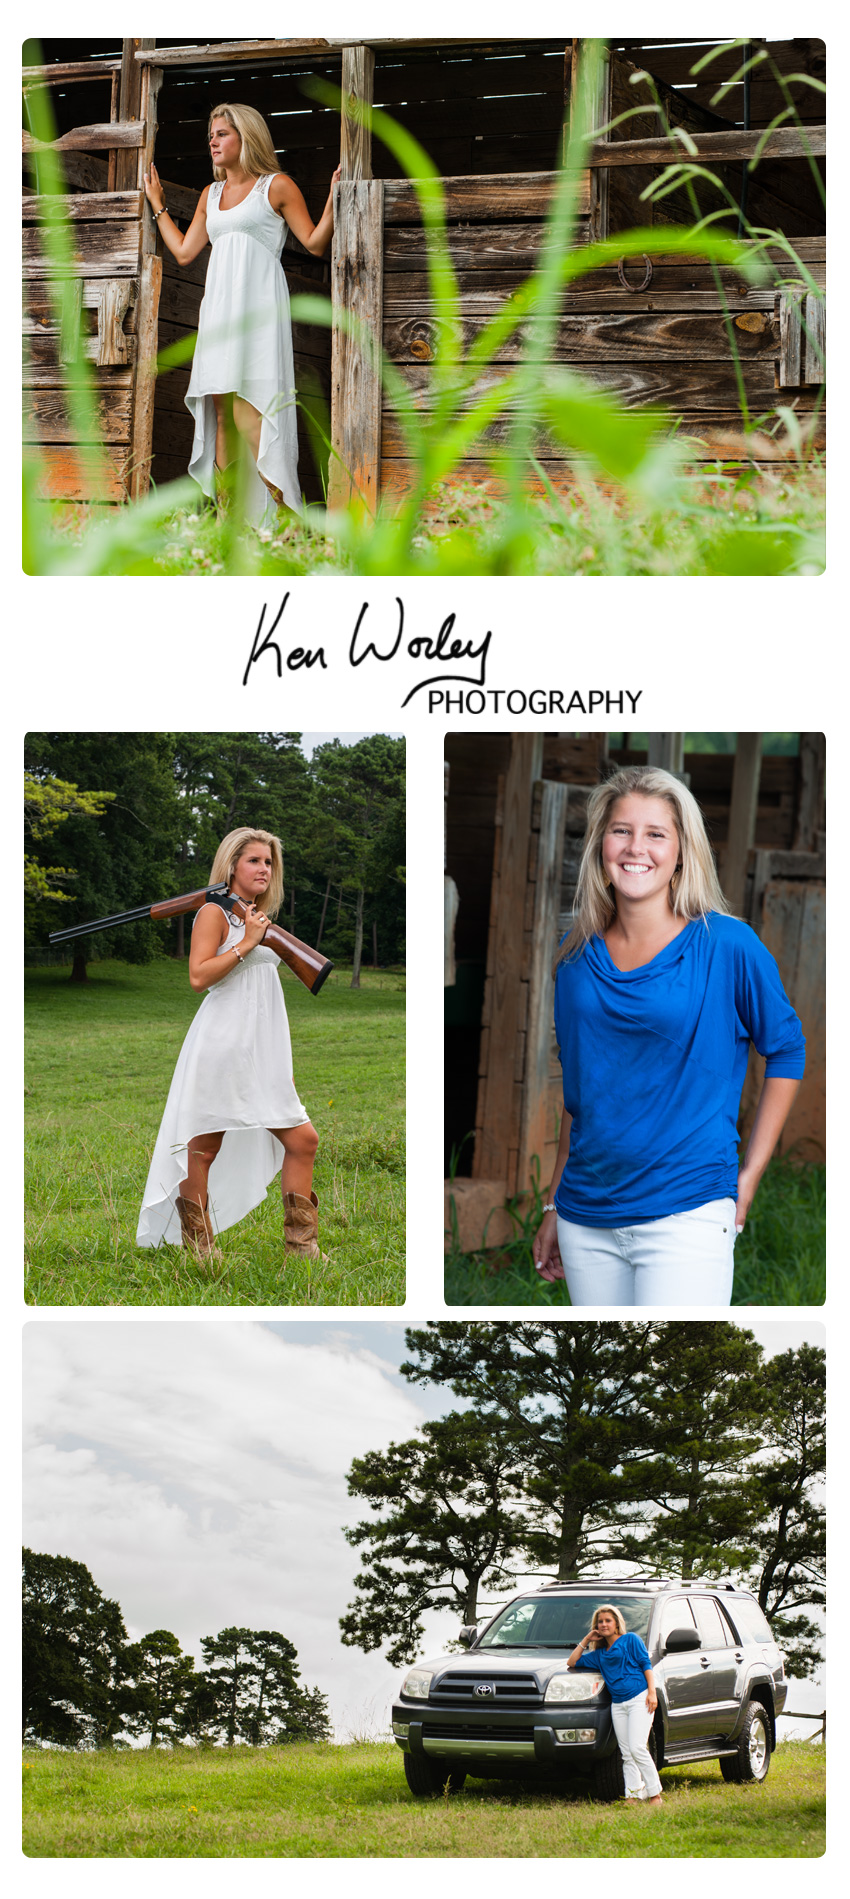 Abigail: 2014 High School Senior!